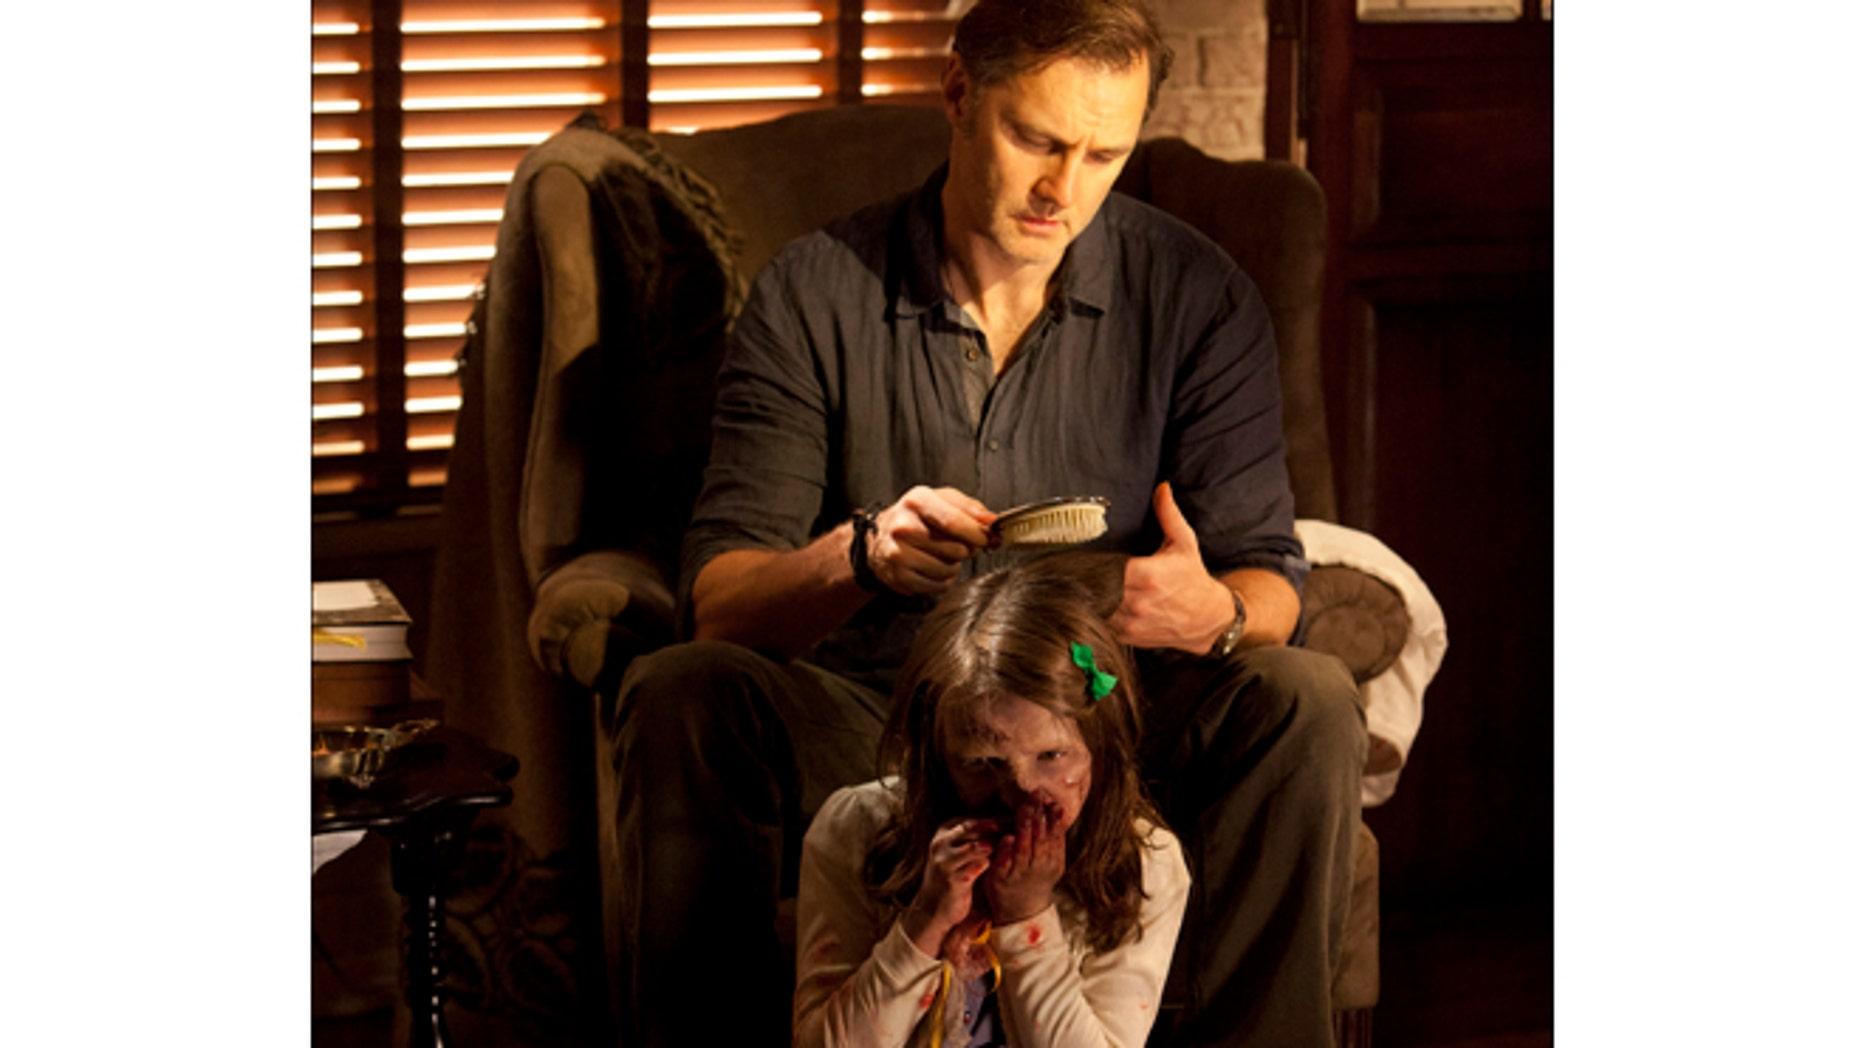 """This undated image released by AMC shows David Morrisey as The Governor brushing the hair of Kylie Szymanski as Penny in a scene from the third season of """"The Walking Dead."""""""